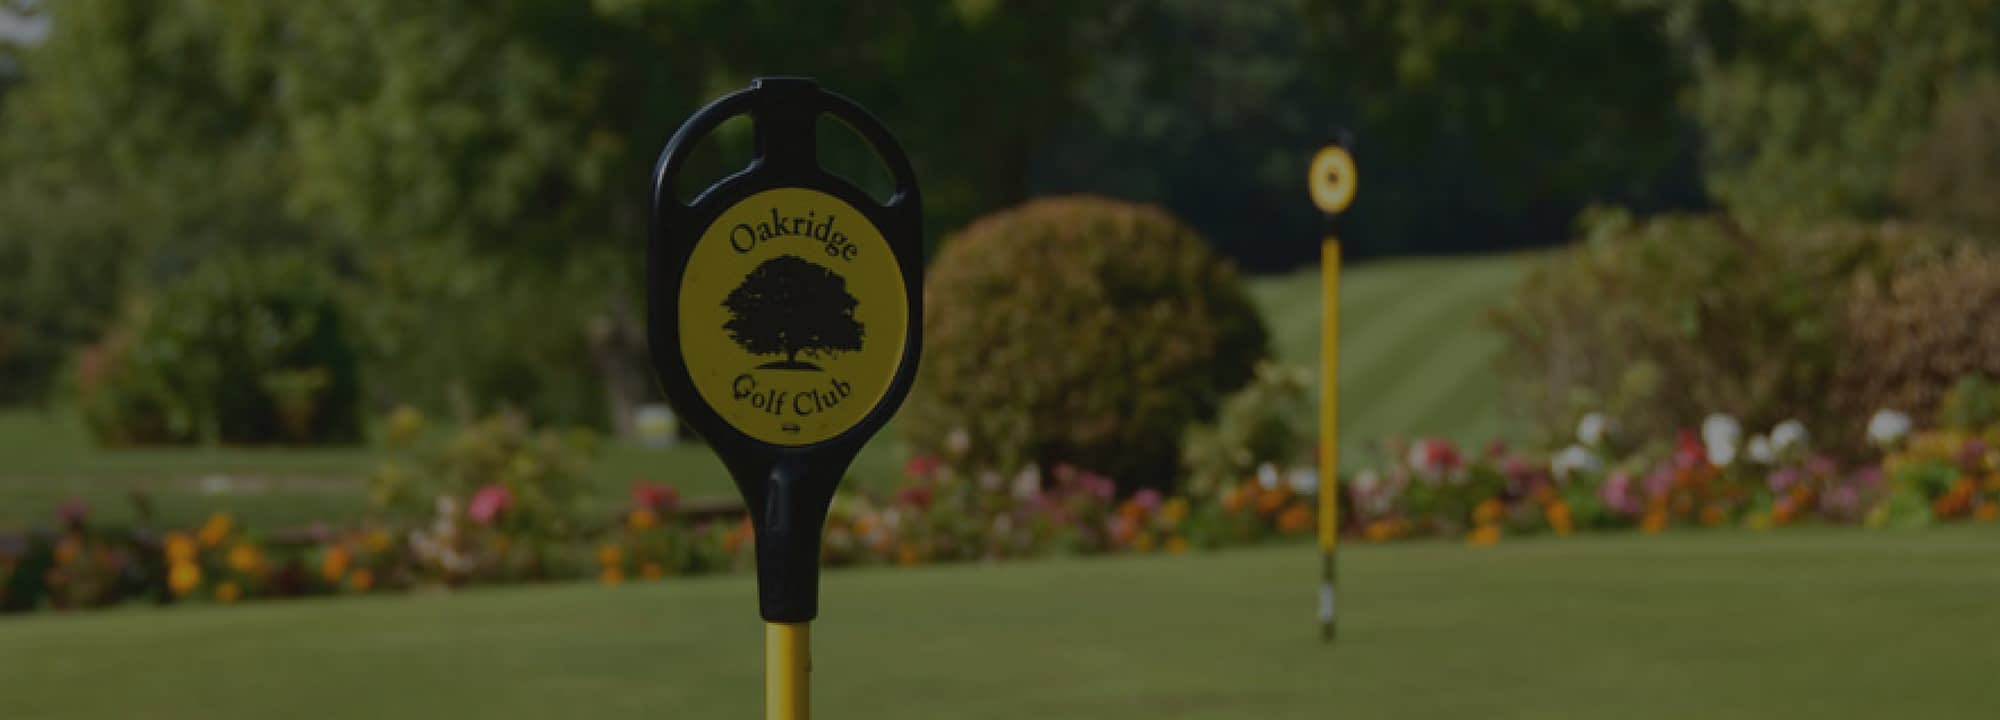 WELCOME TO OAKRIDGE GOLF CLUB Nestled in the heart of the spectacular Warwickshire countryside, Oakridge is a family-run golf club renowned for its friendly atmosphere and distinctive parkland course.